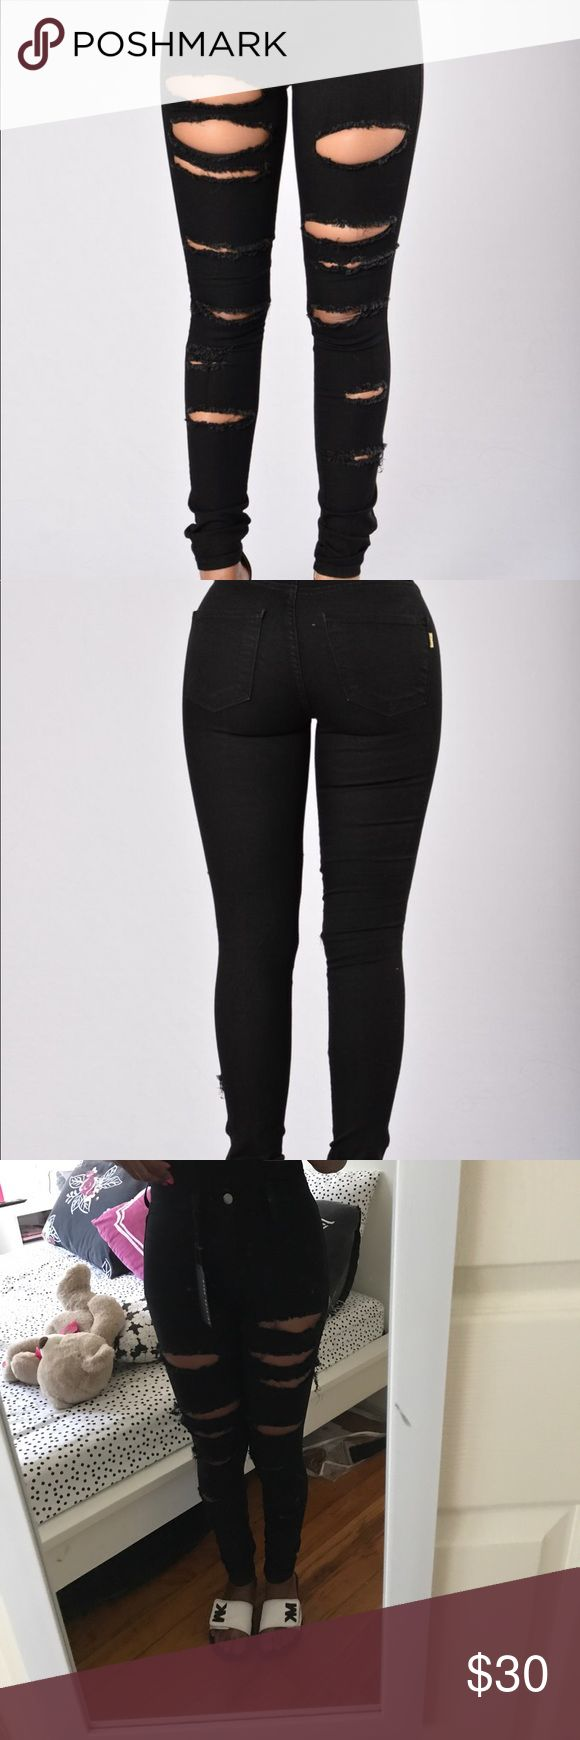 Slash and Burn Jeans Skinny leg black jeans from Fashion Nova. Rips are all the way down the leg. Long in length. Fashion Nova Jeans Skinny